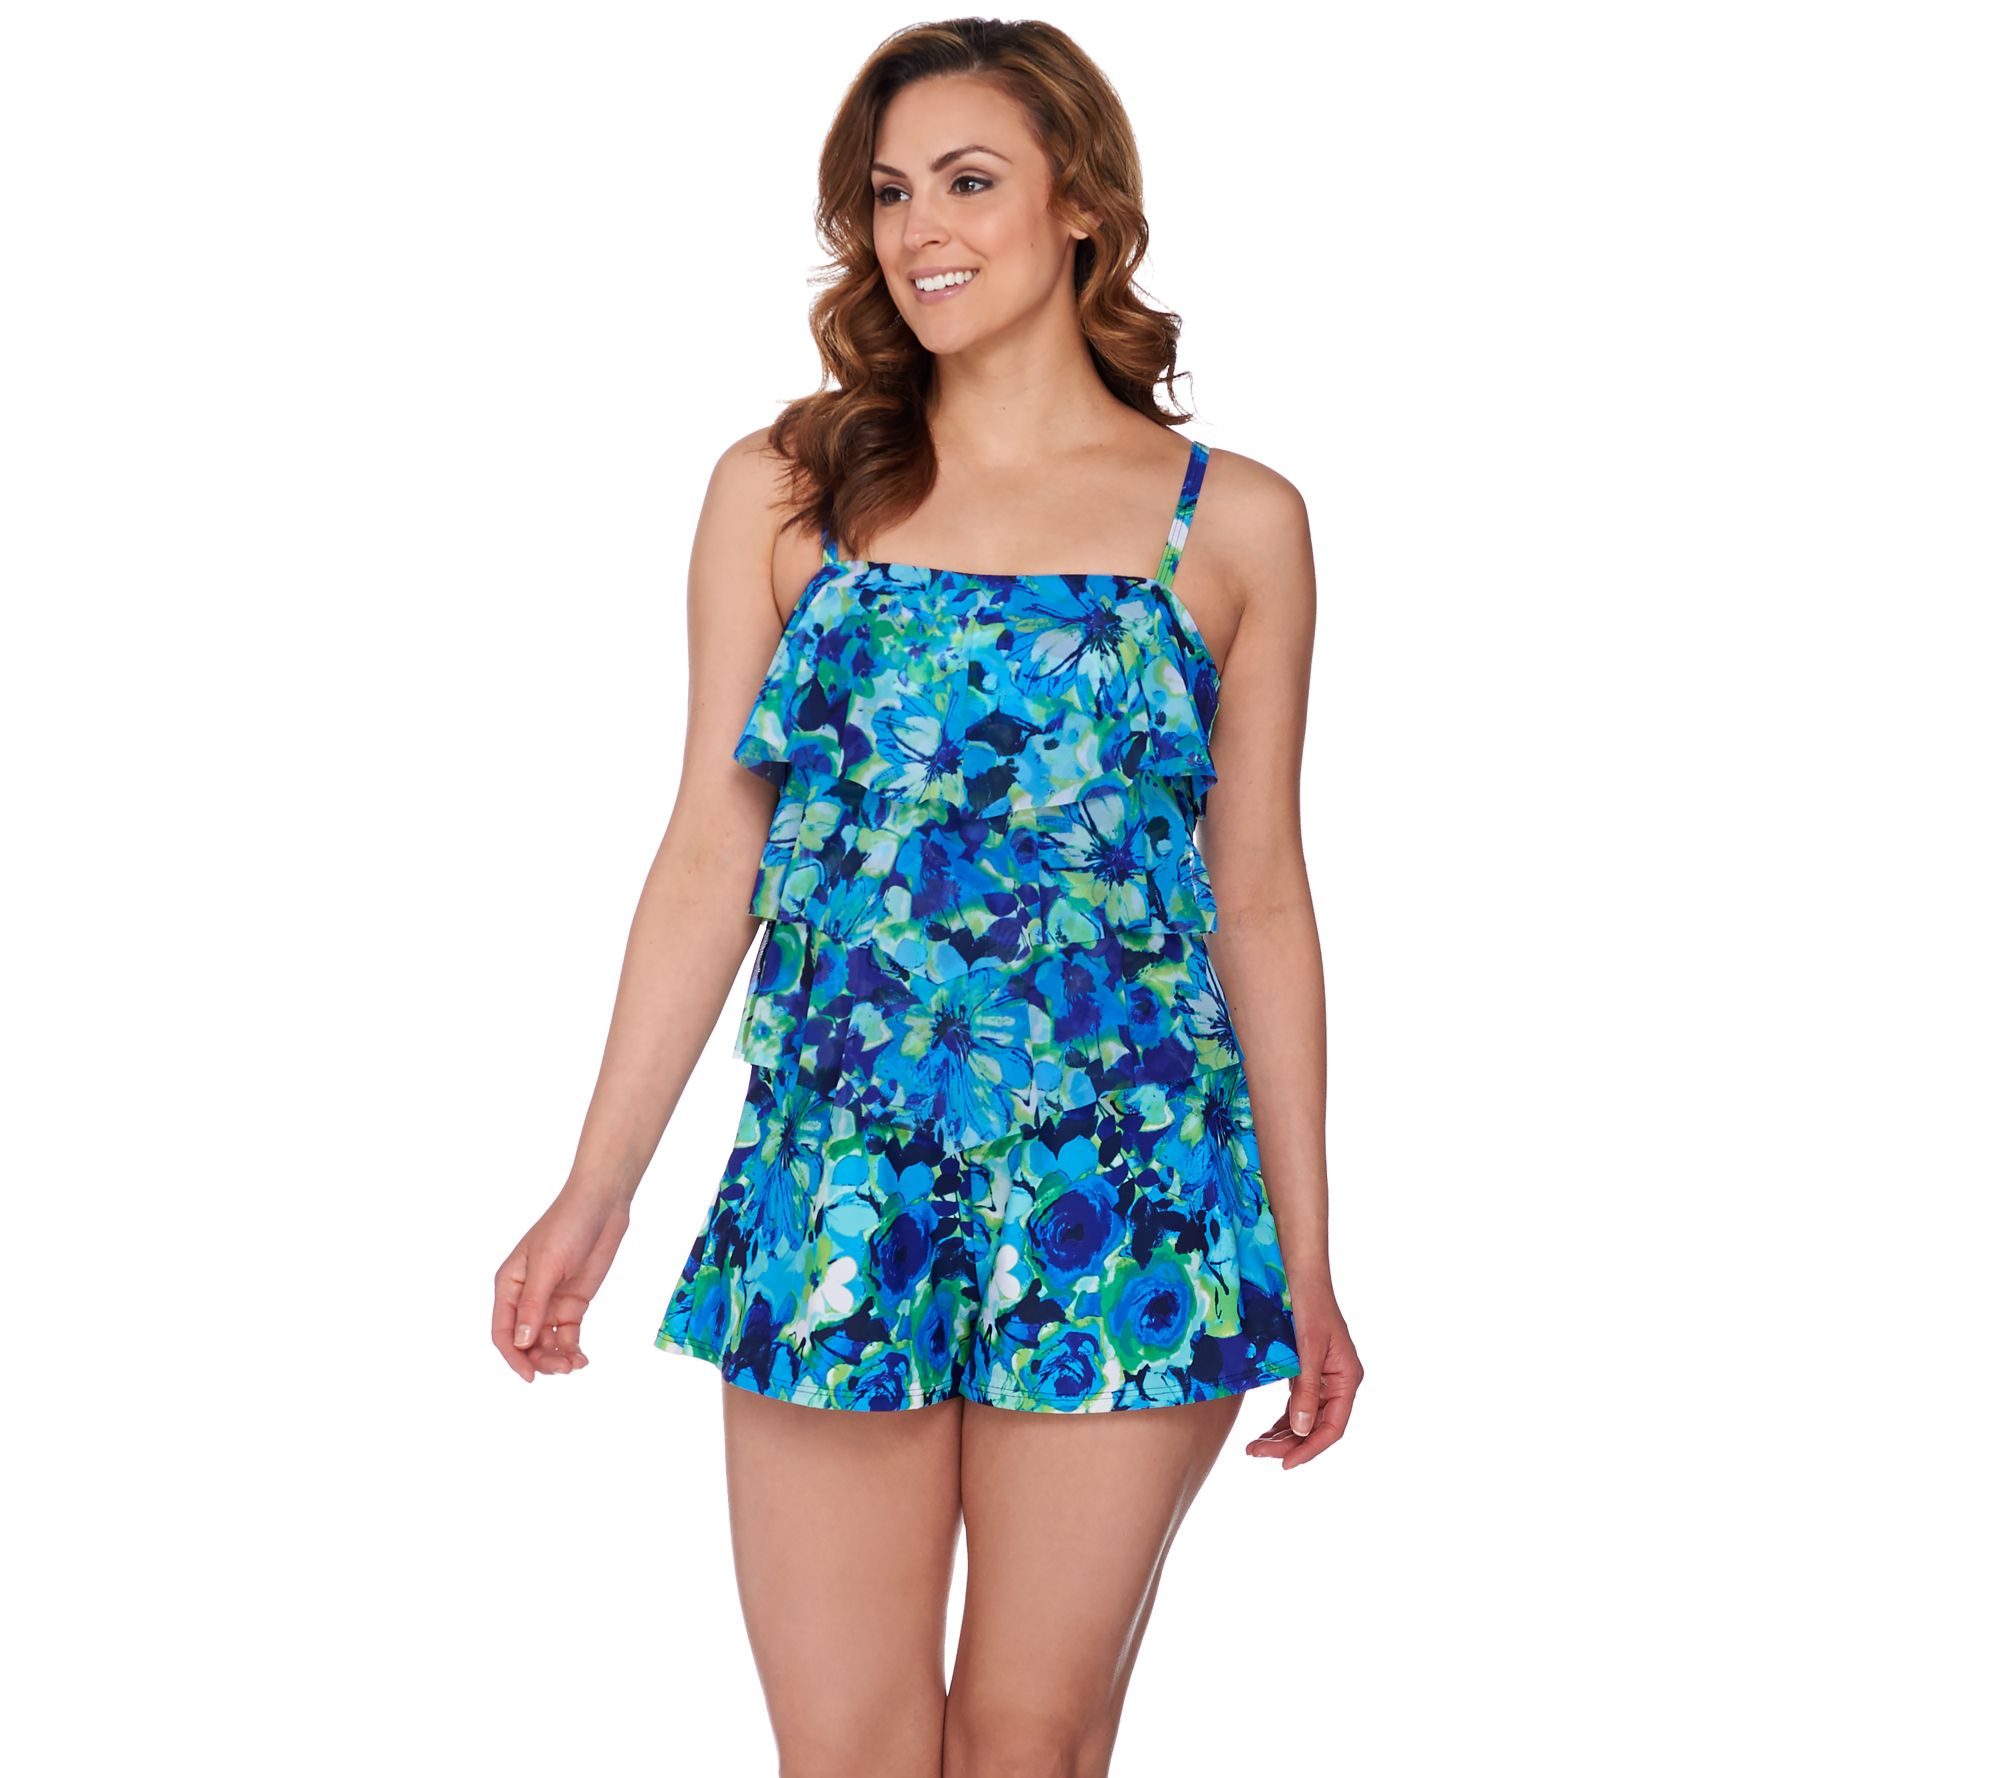 Fit 4 U Bandeau V-Tiered Mesh Romper Swimsuit - Page 1 — QVC.com